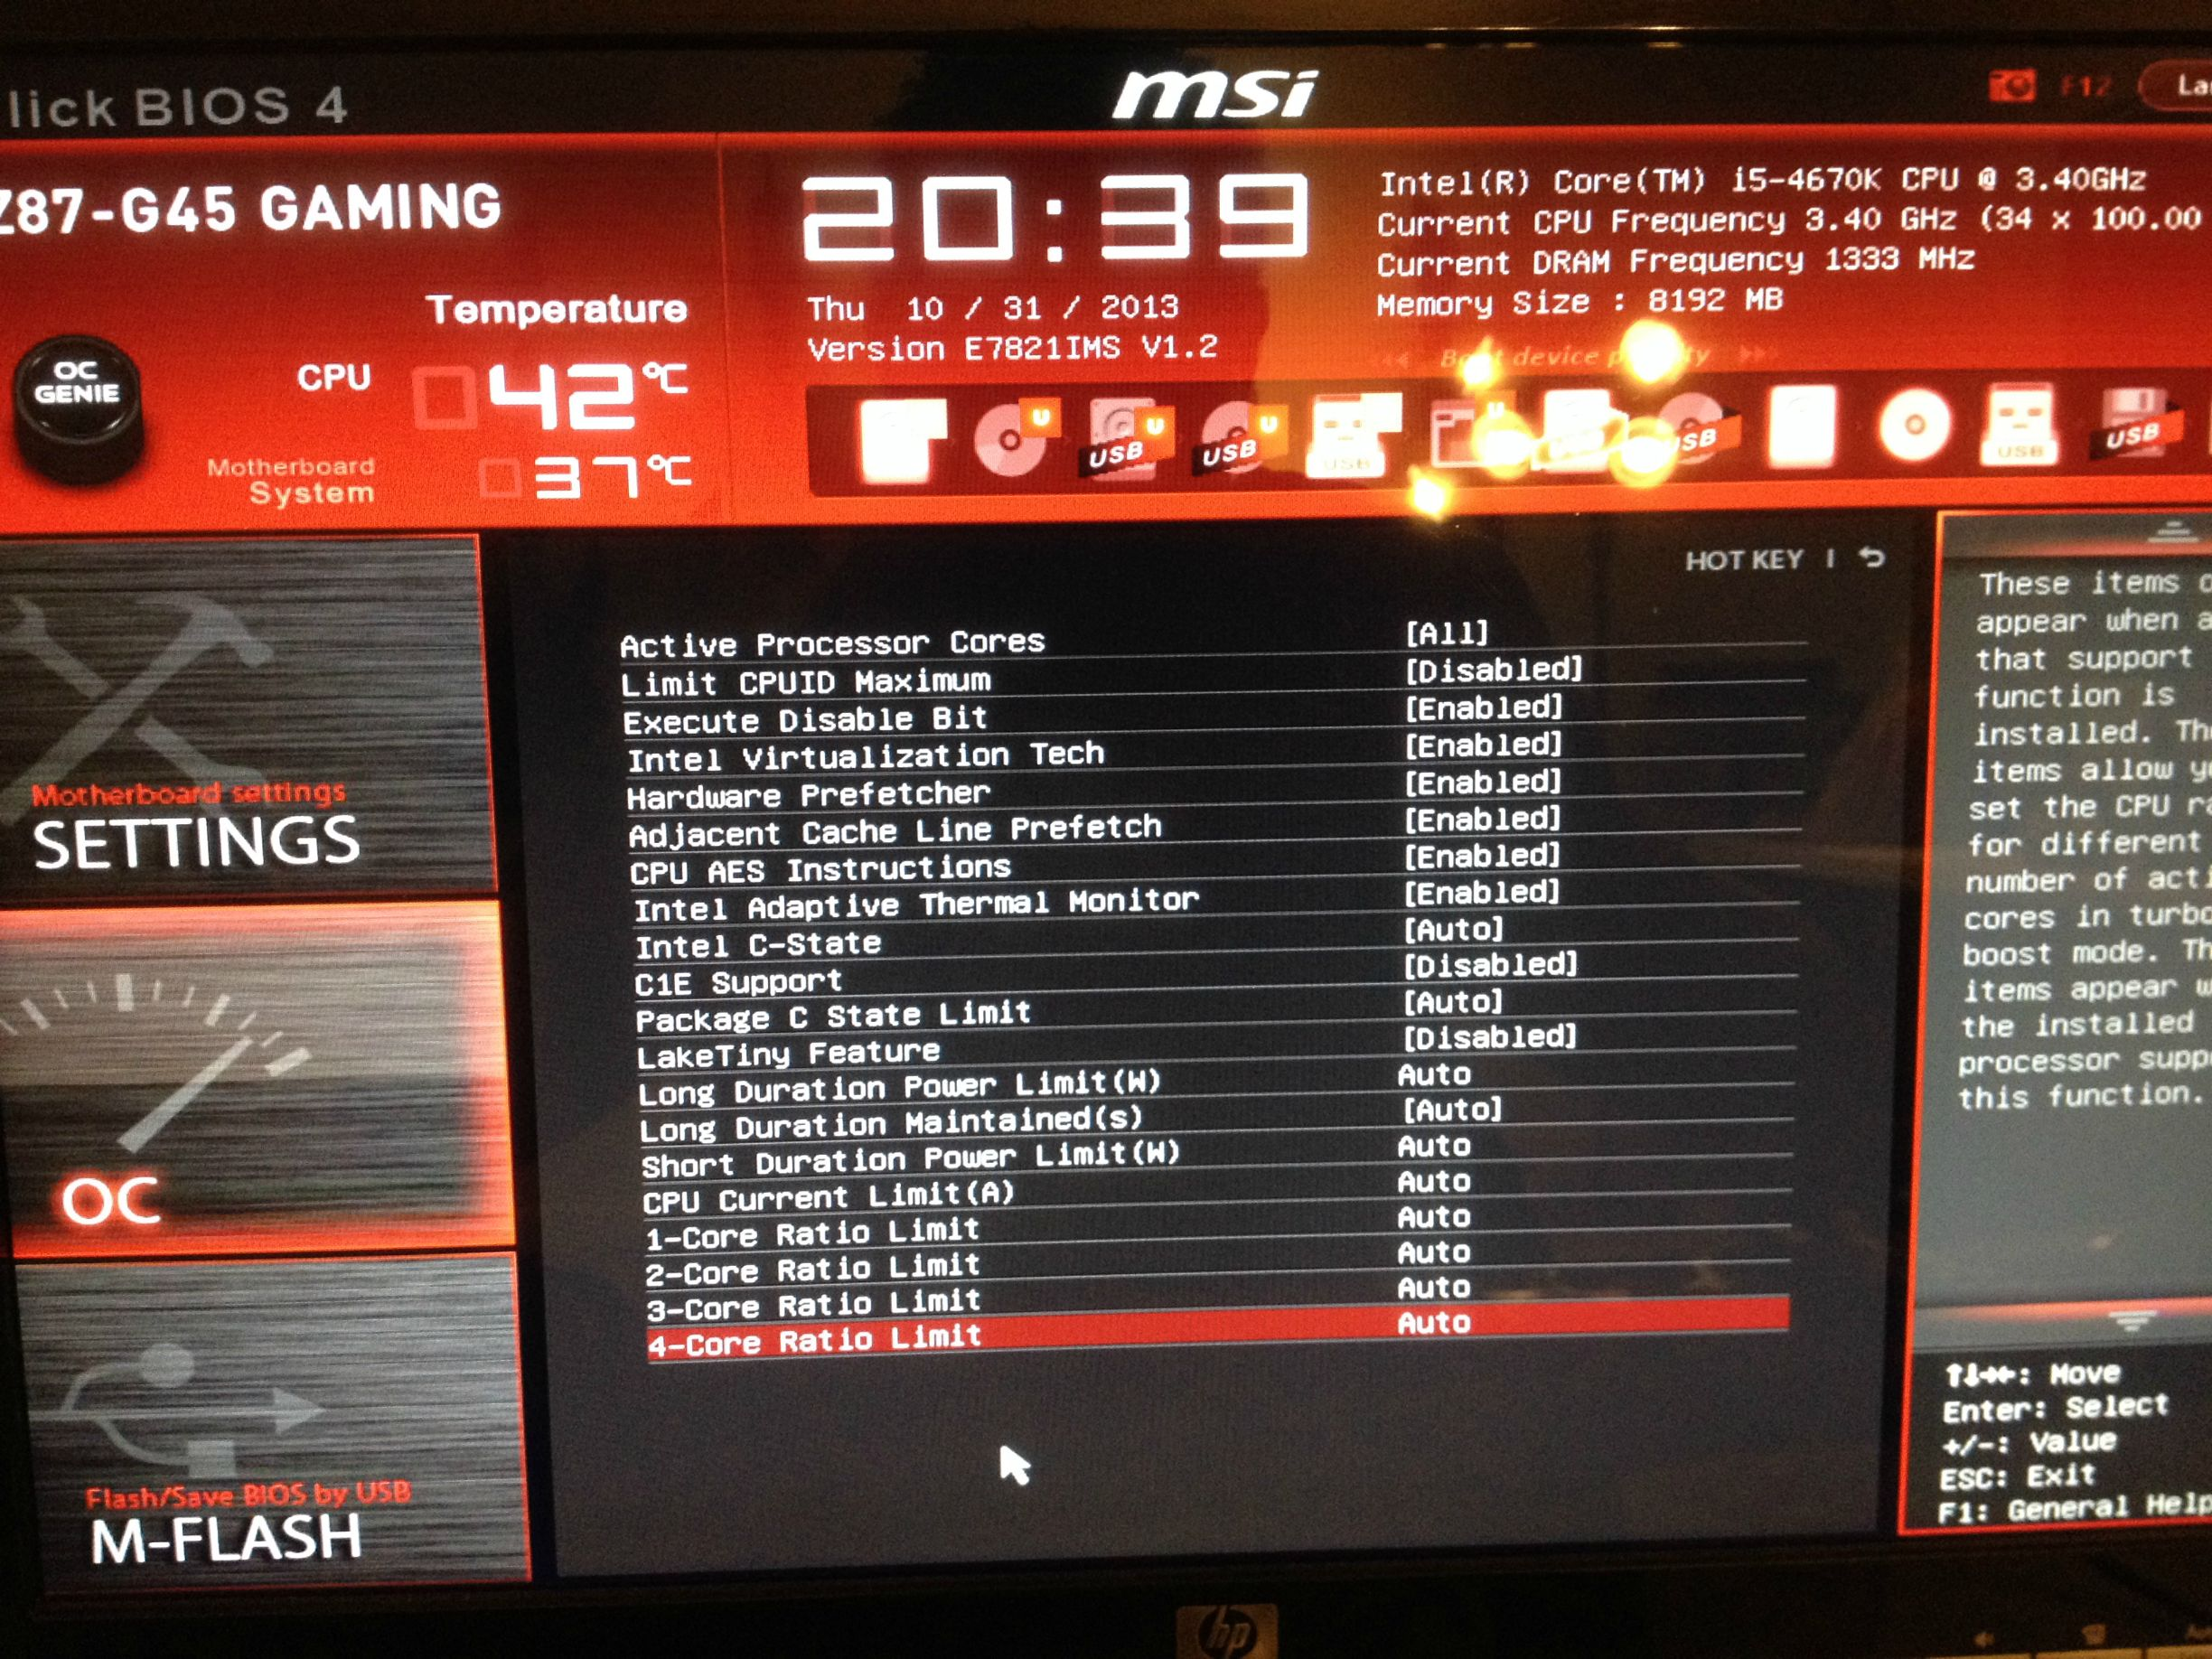 New mobo, new processor   worse Scarlett 2i2 performance